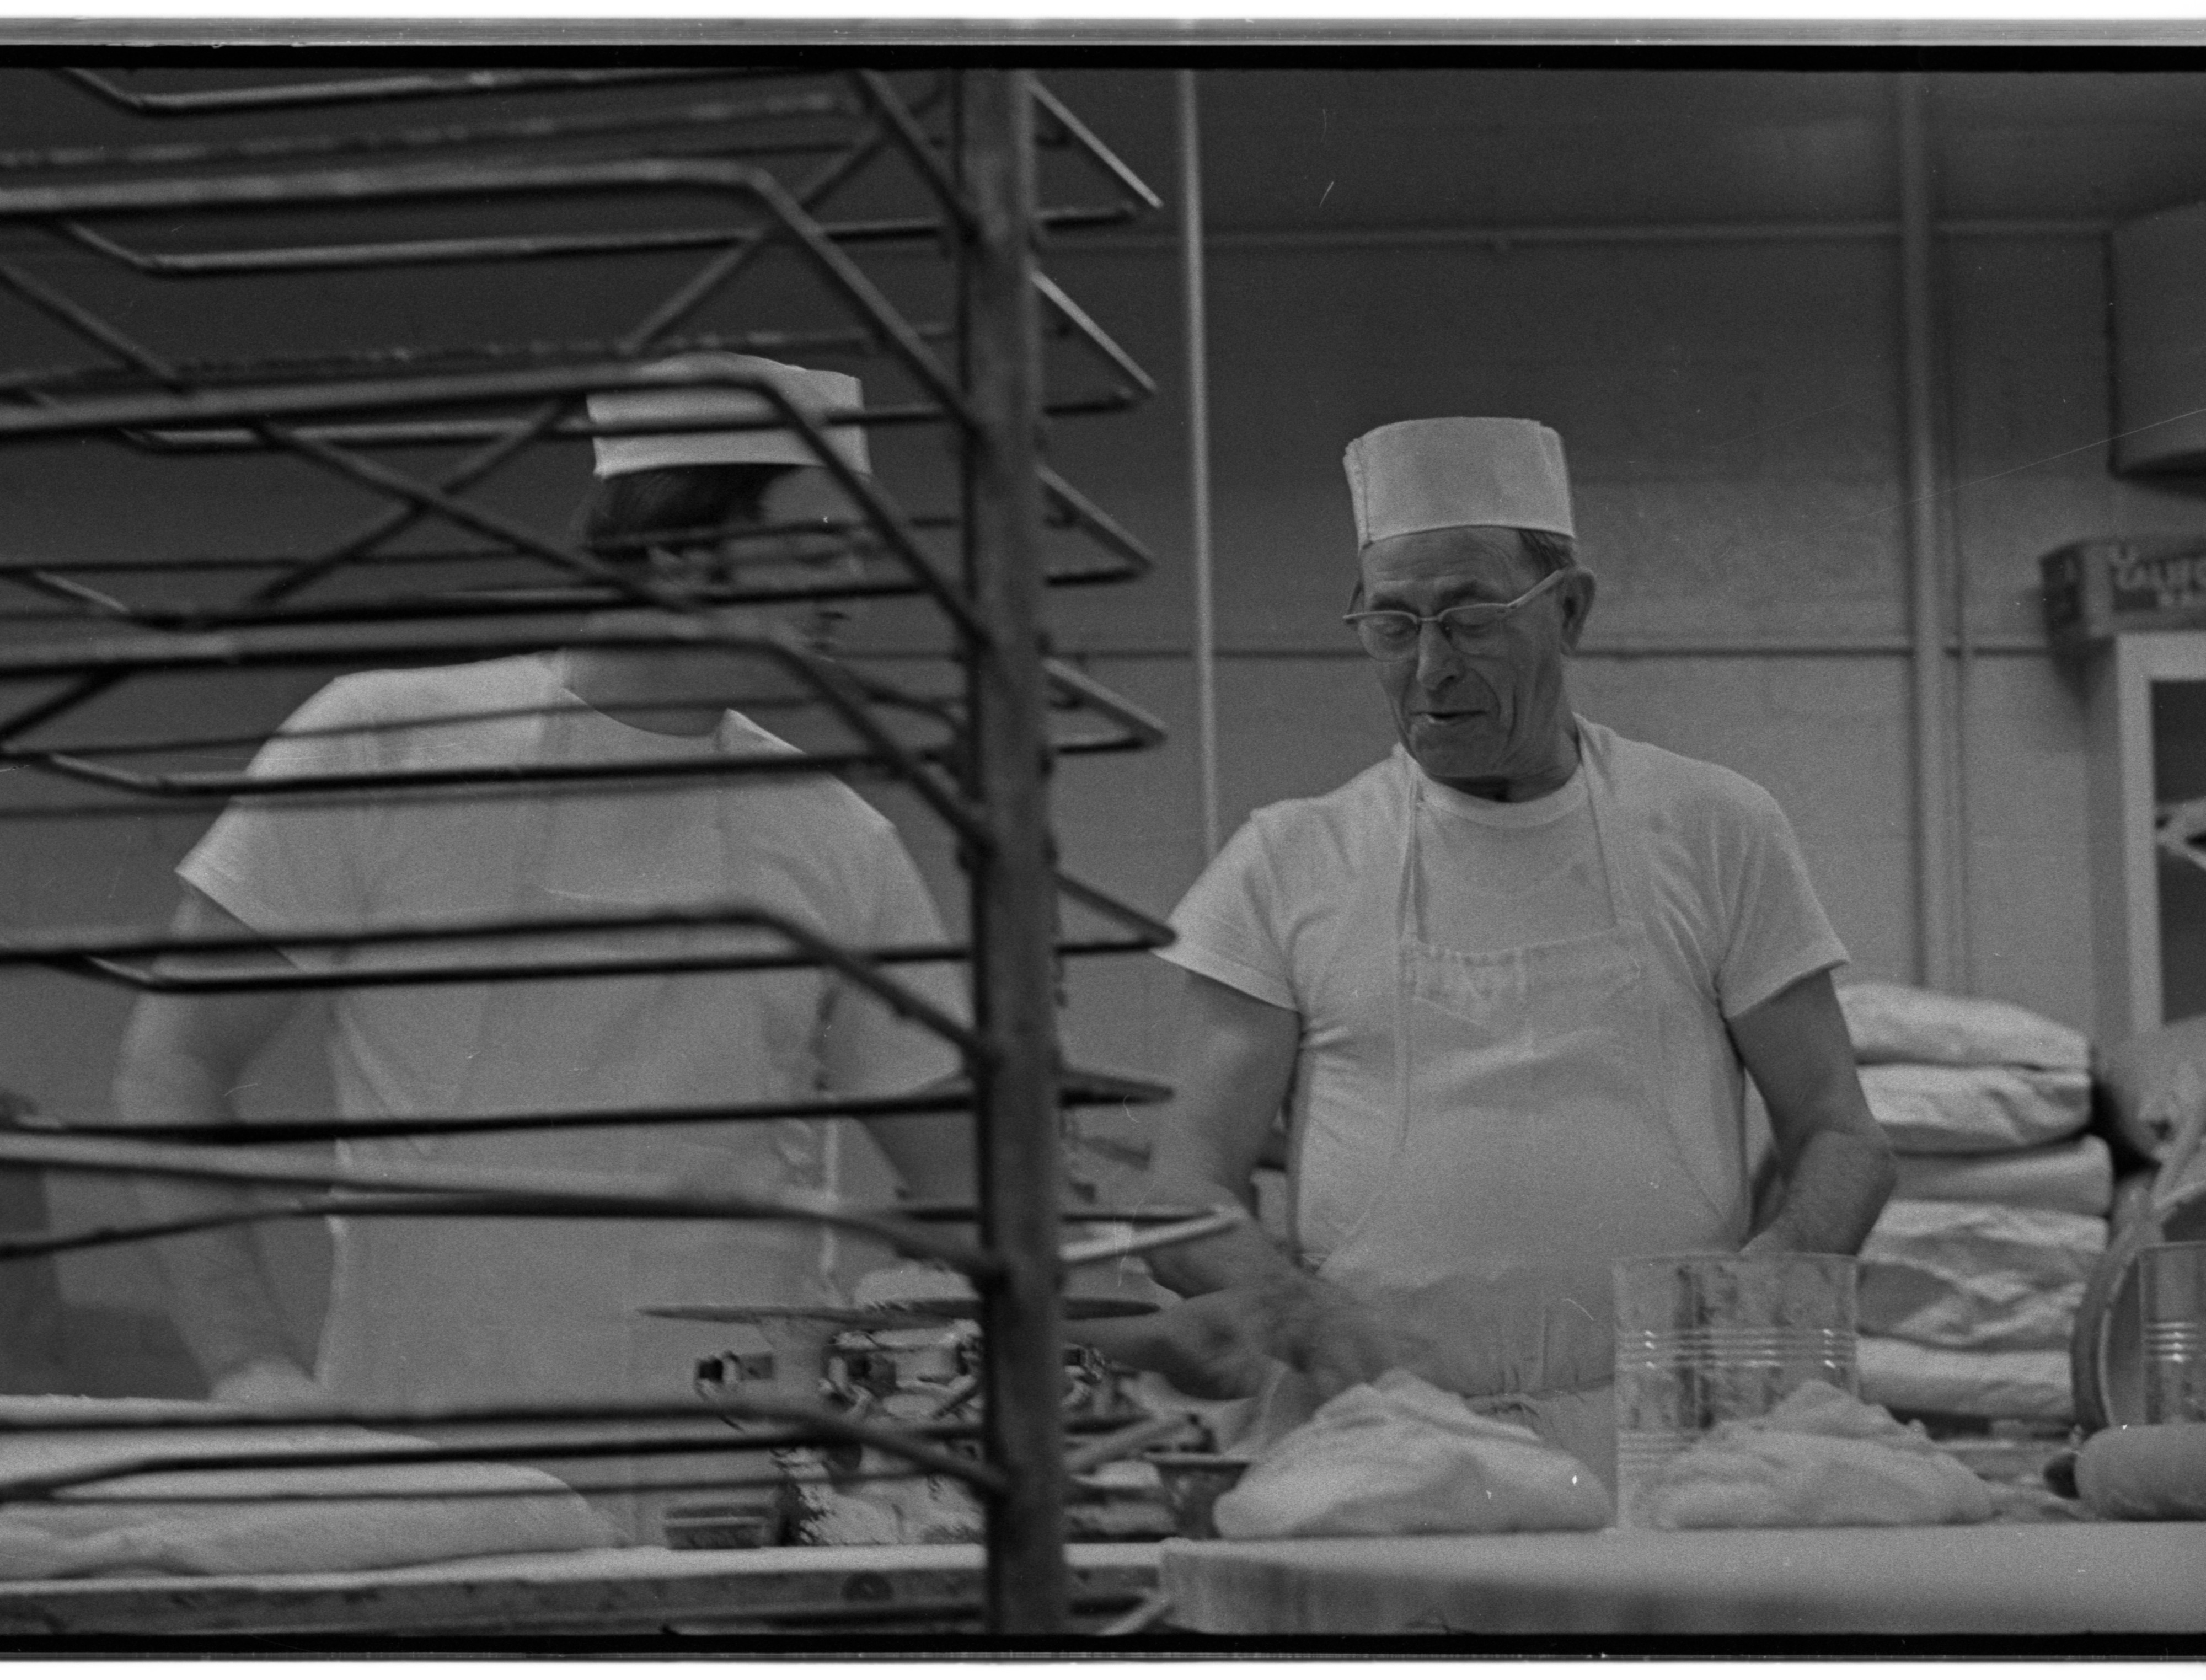 Jim Lutz and Gene Horning Making Bread at Quality Bakery, April 1974 image